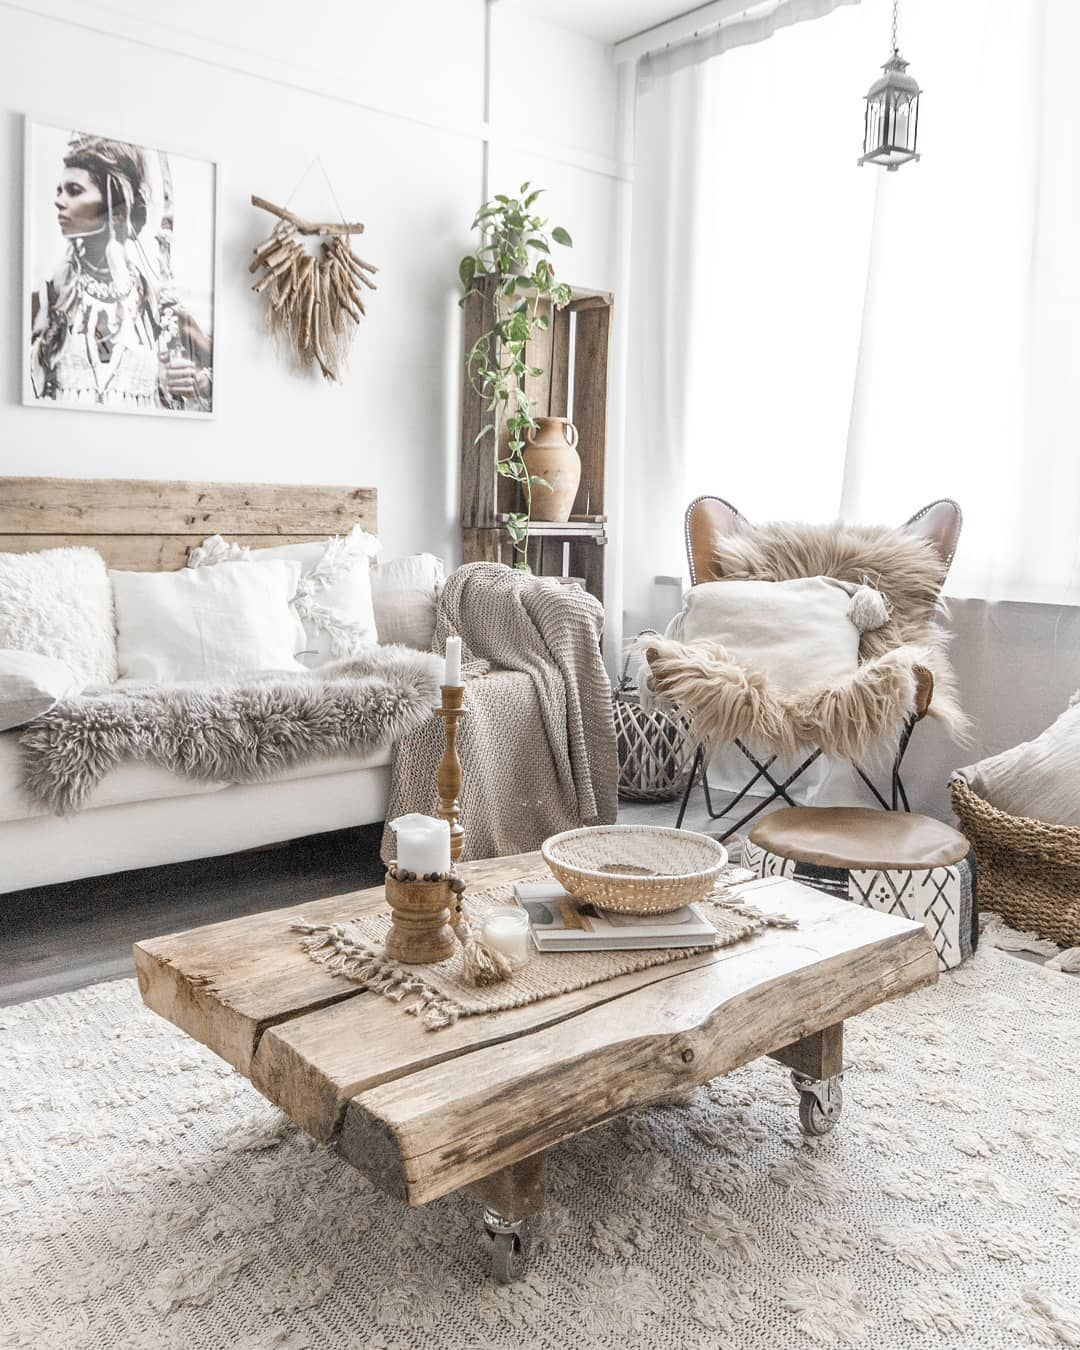 Instagram In 2020 Rustic Chic Living Room Boho Living Room Decor Rustic Living Room #shabby #chic #living #room #decorations